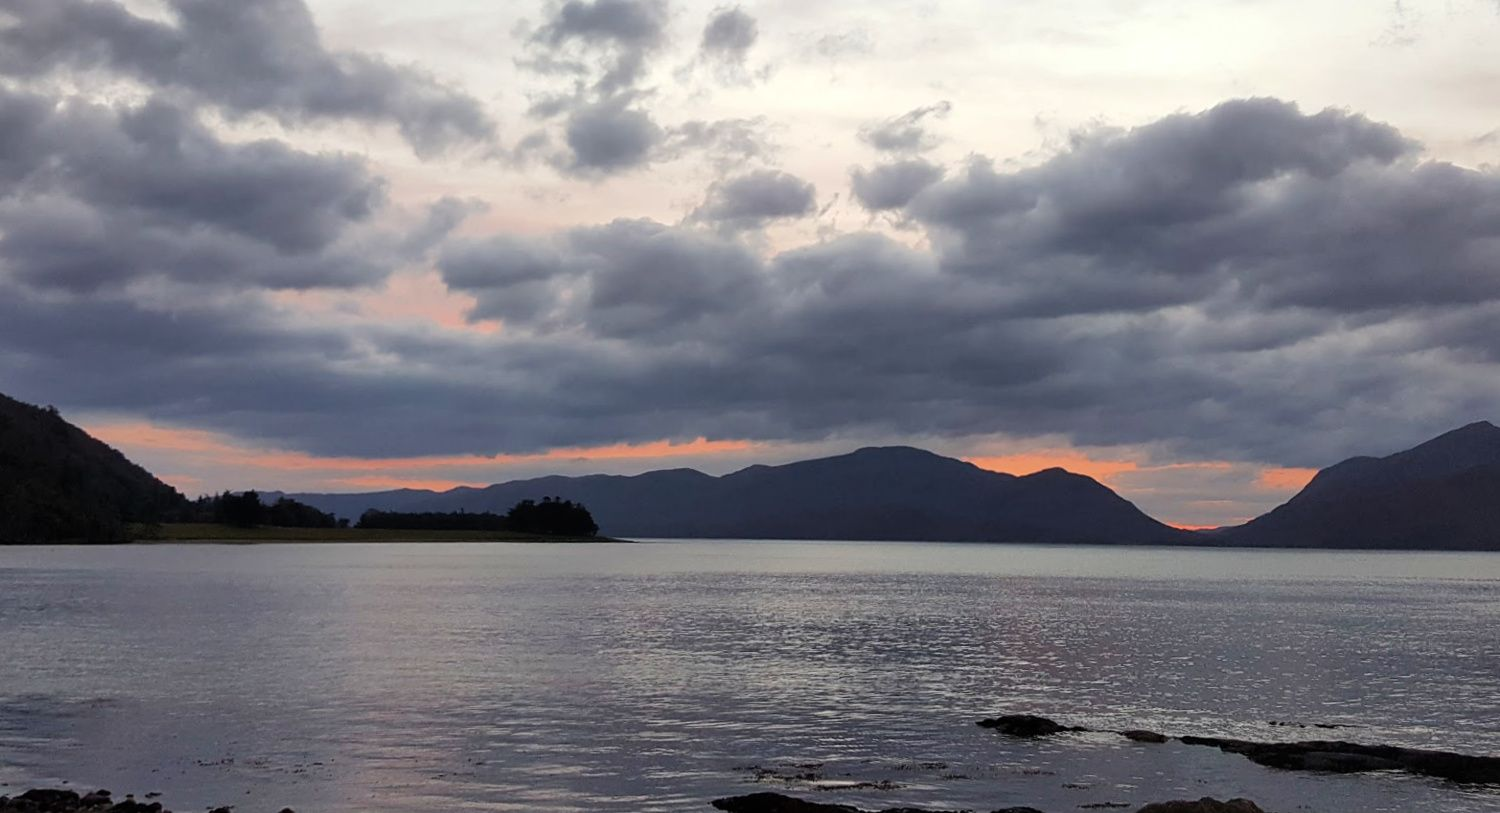 The view from The Holly Tree Hotel - looking west across Loch Linnhe